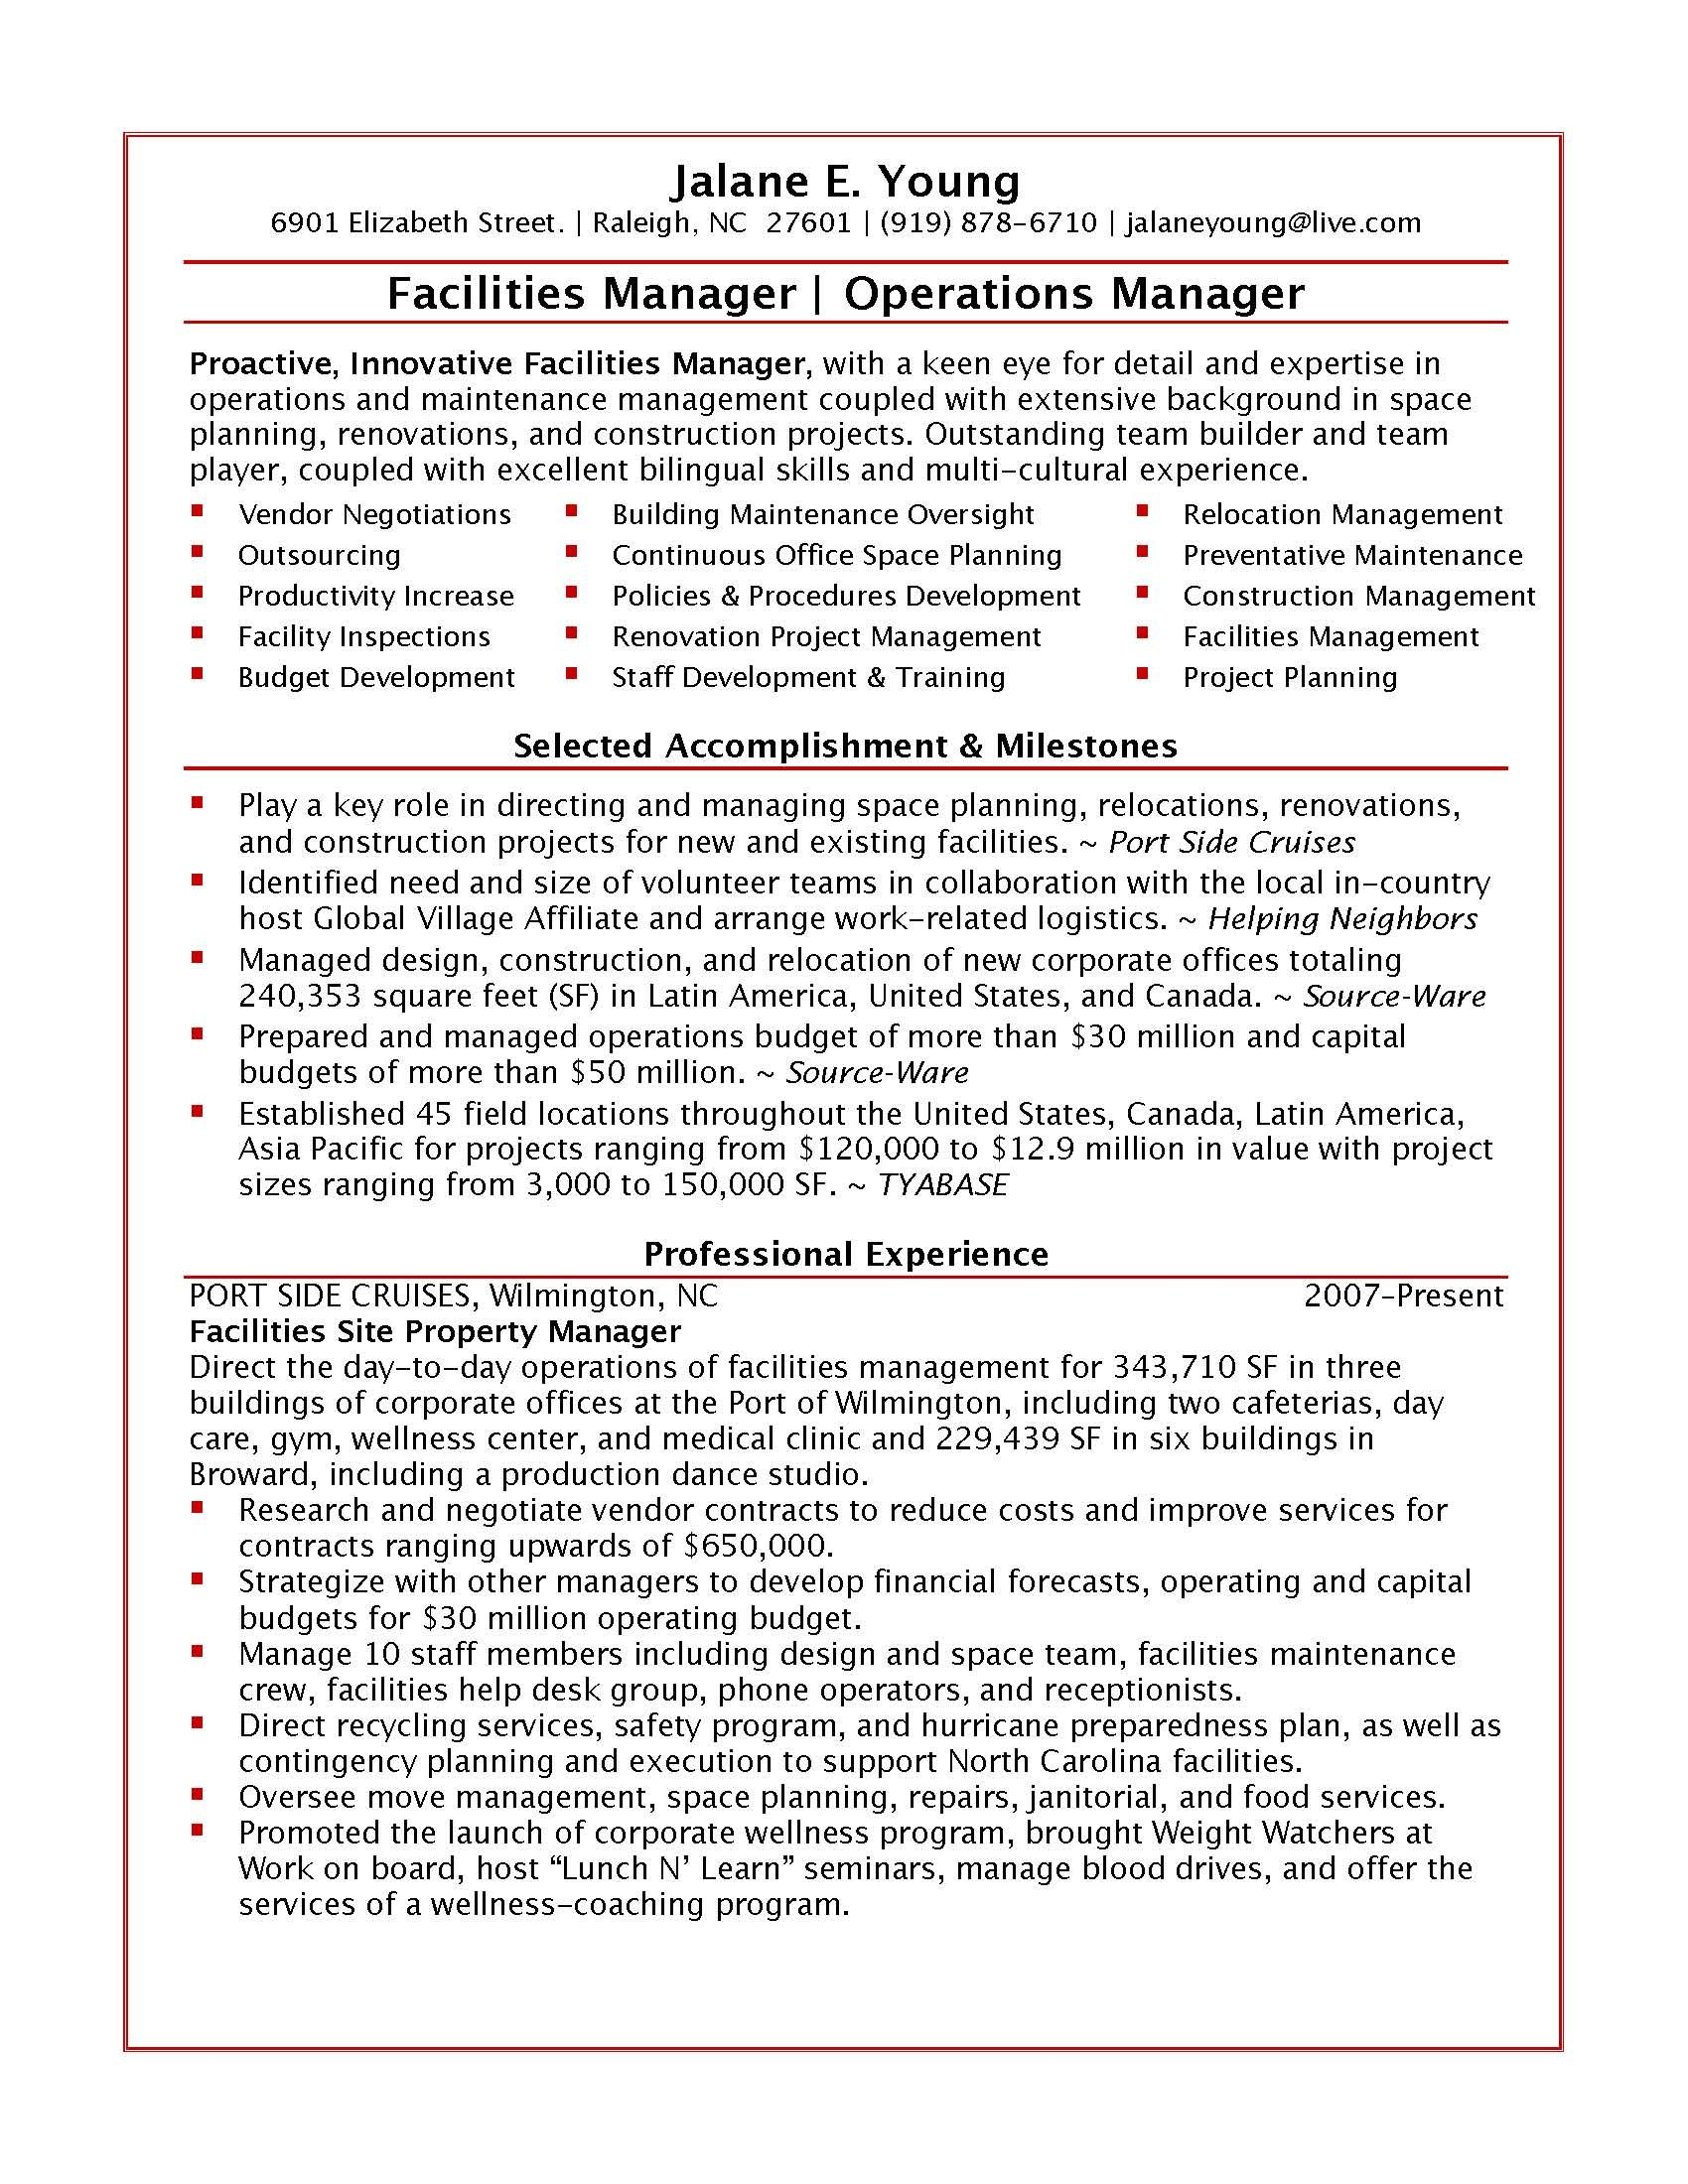 Business Analyst Manager Resume - http://topresume.info/business-analyst-manager-resume/